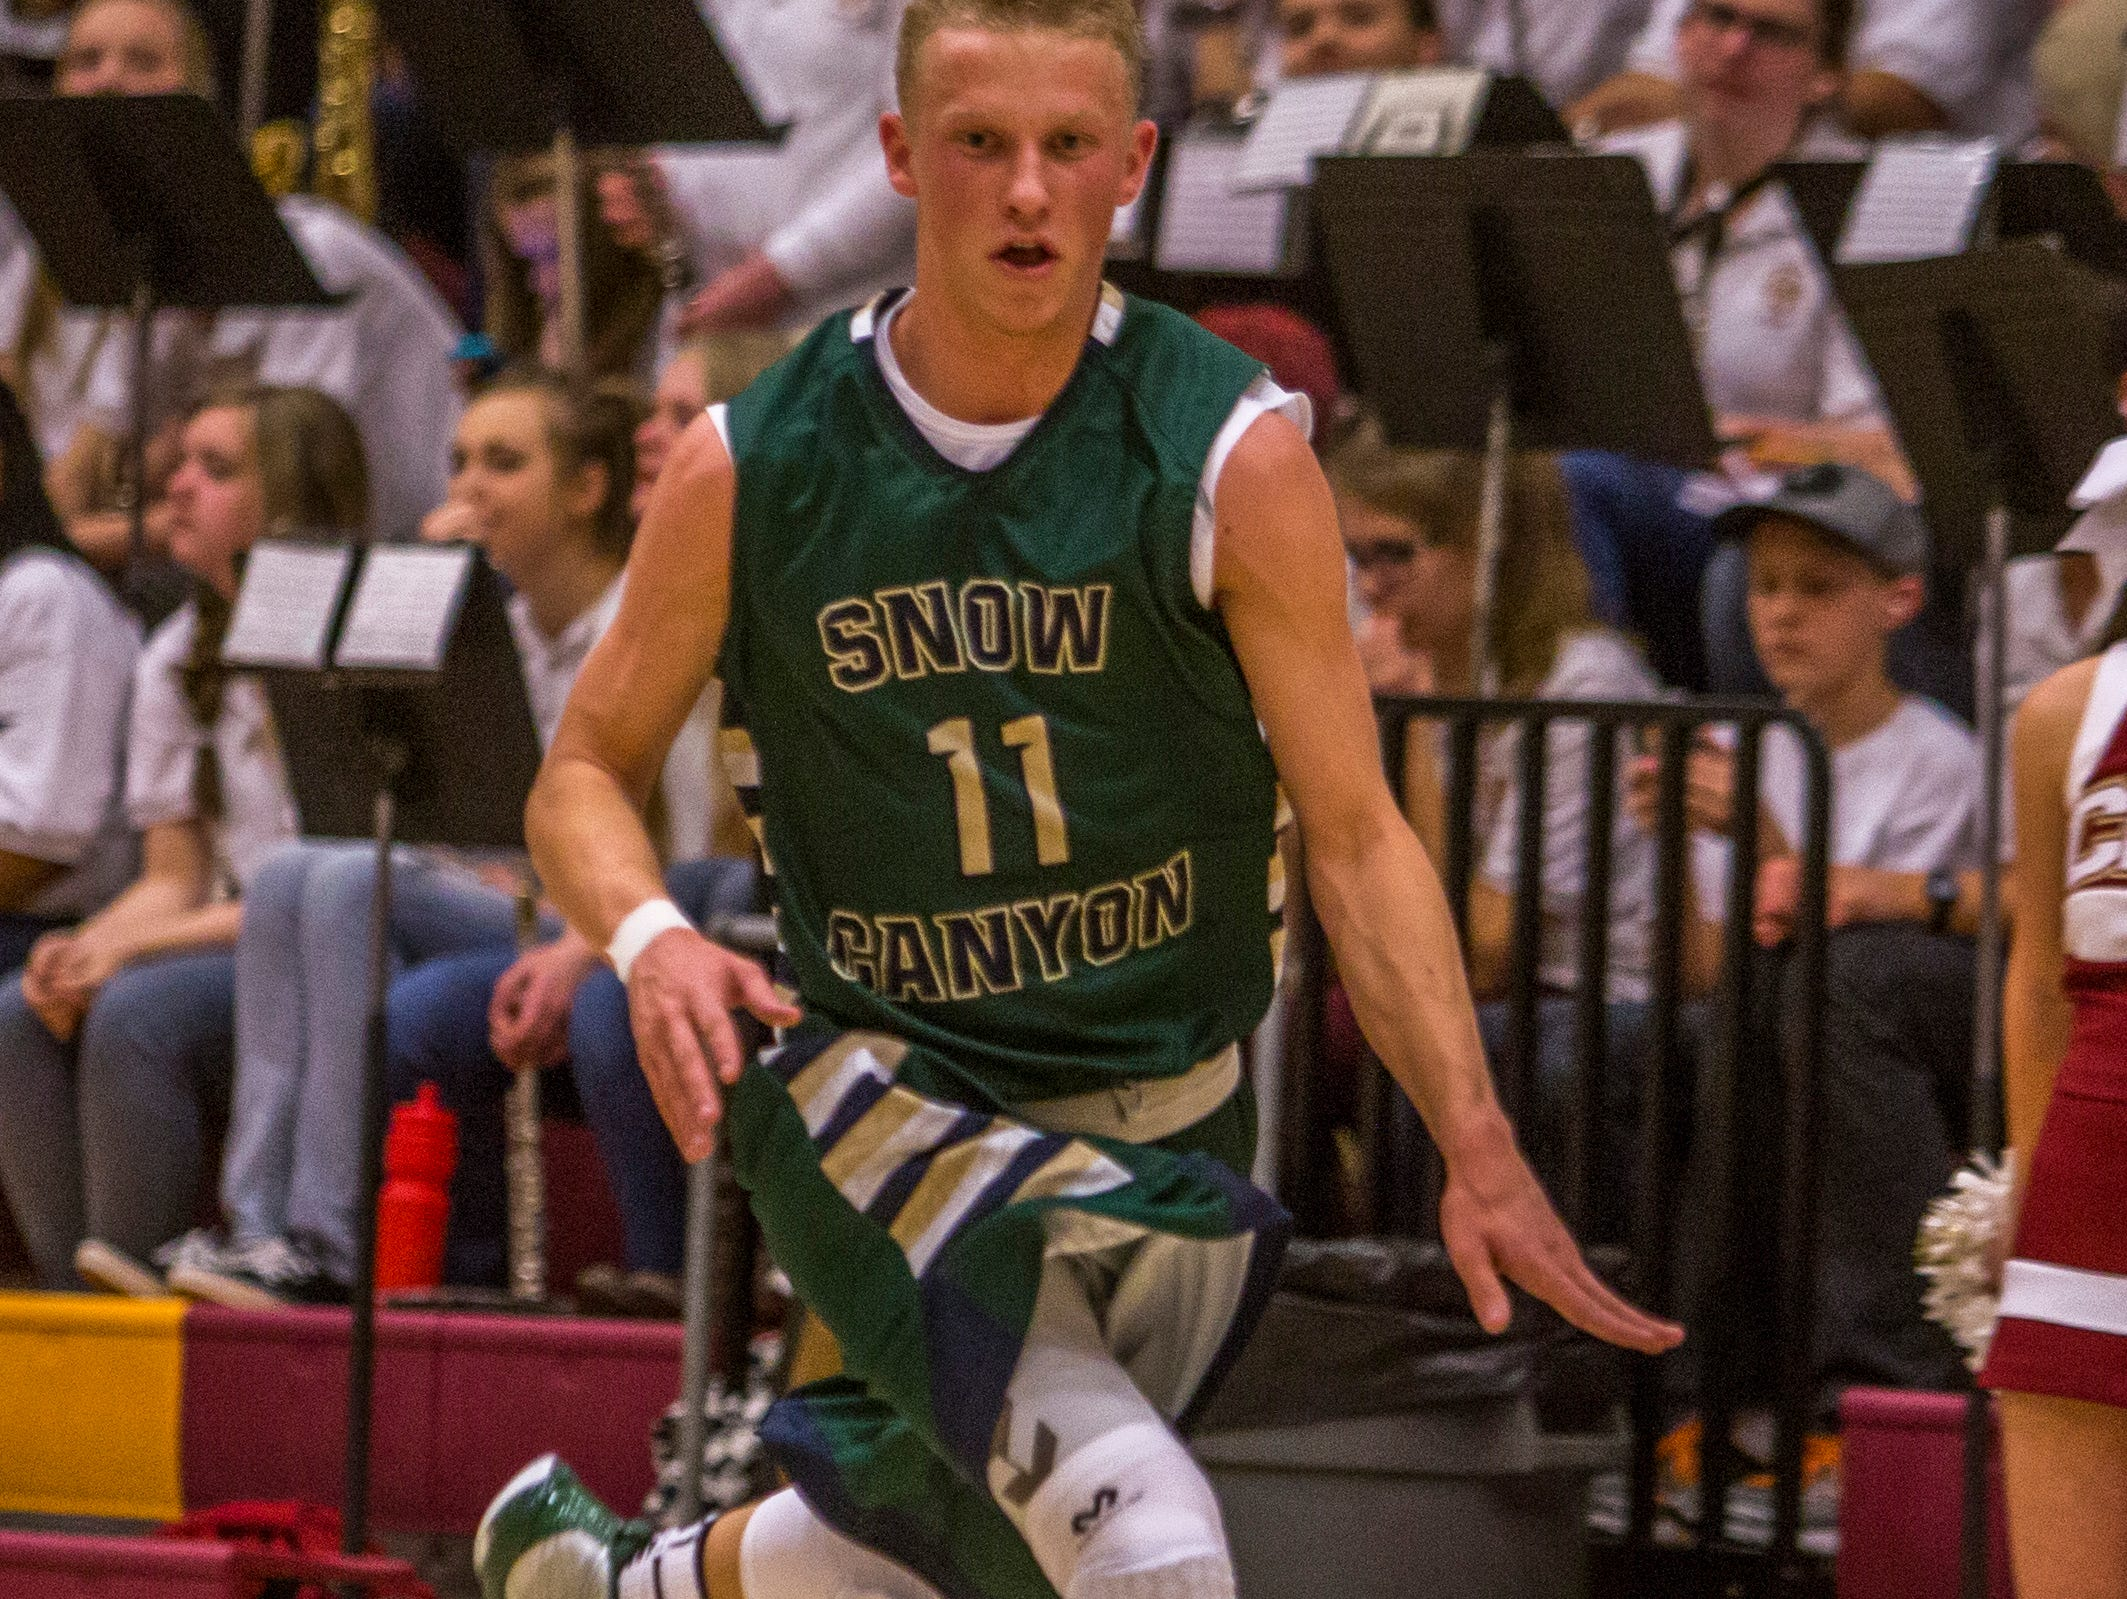 Snow Canyon's Caeden Barney (#11) dribbles the ball up the floor during the game against Cedar, Wednesday, Jan. 13, 2016.